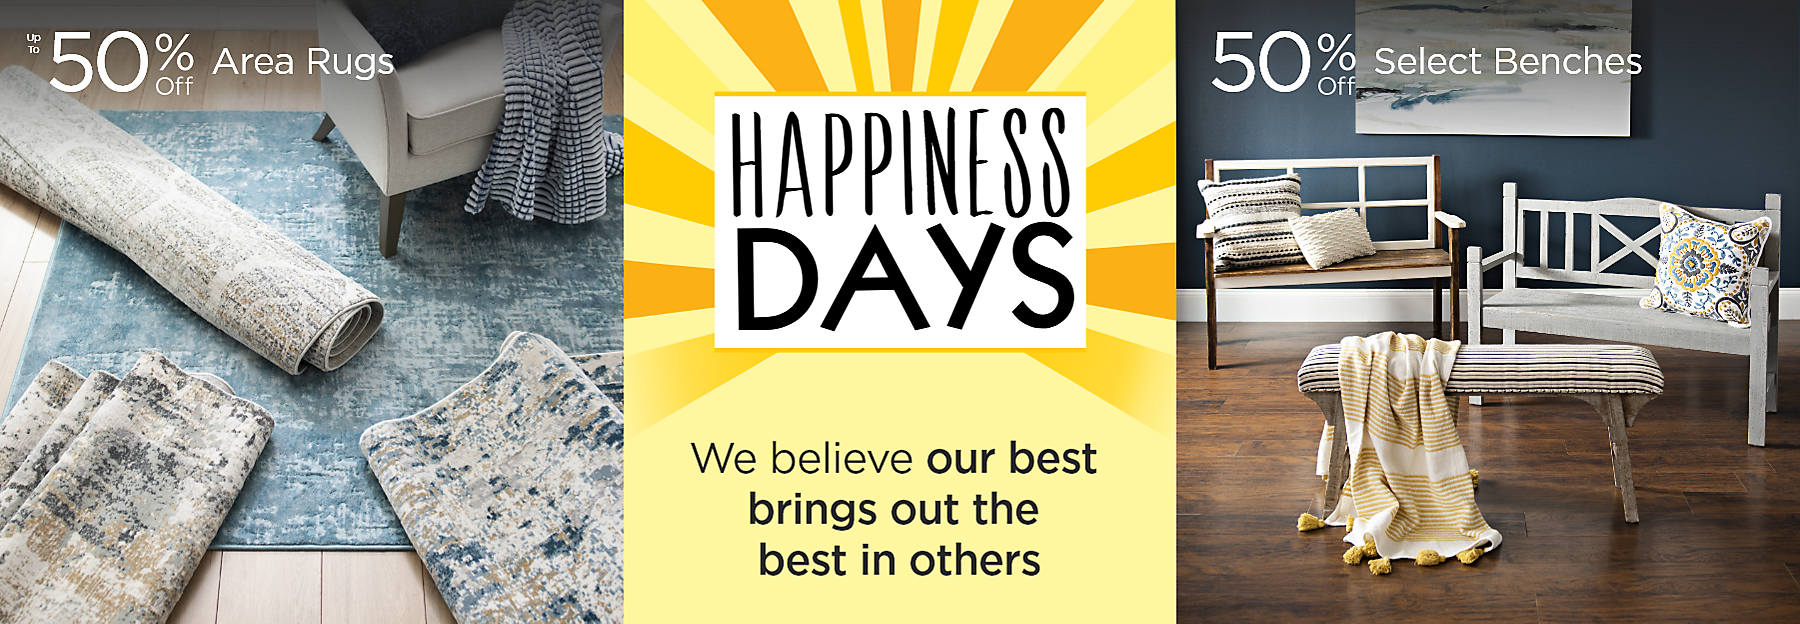 Happiness Days We believe our best brings out the best in others Up to 50% Off Area Rugs and 50% Off Select Benches